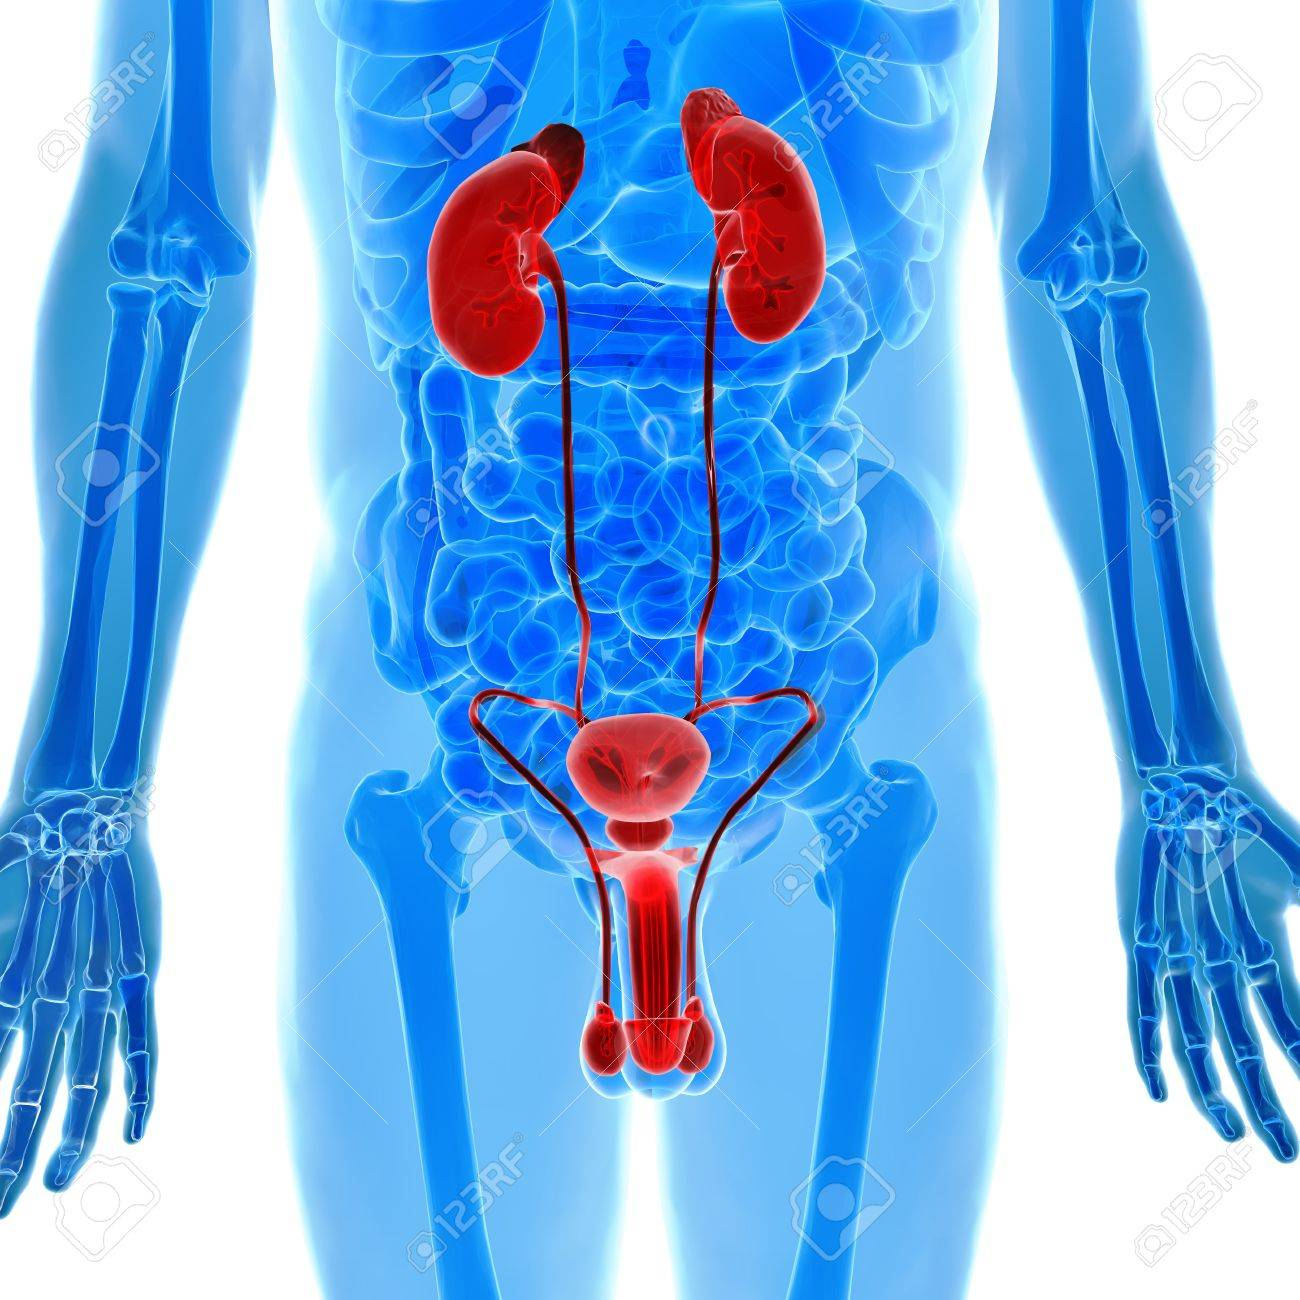 Male Genitals And Kidneys Anatomy Stock Photo, Picture And Royalty ...